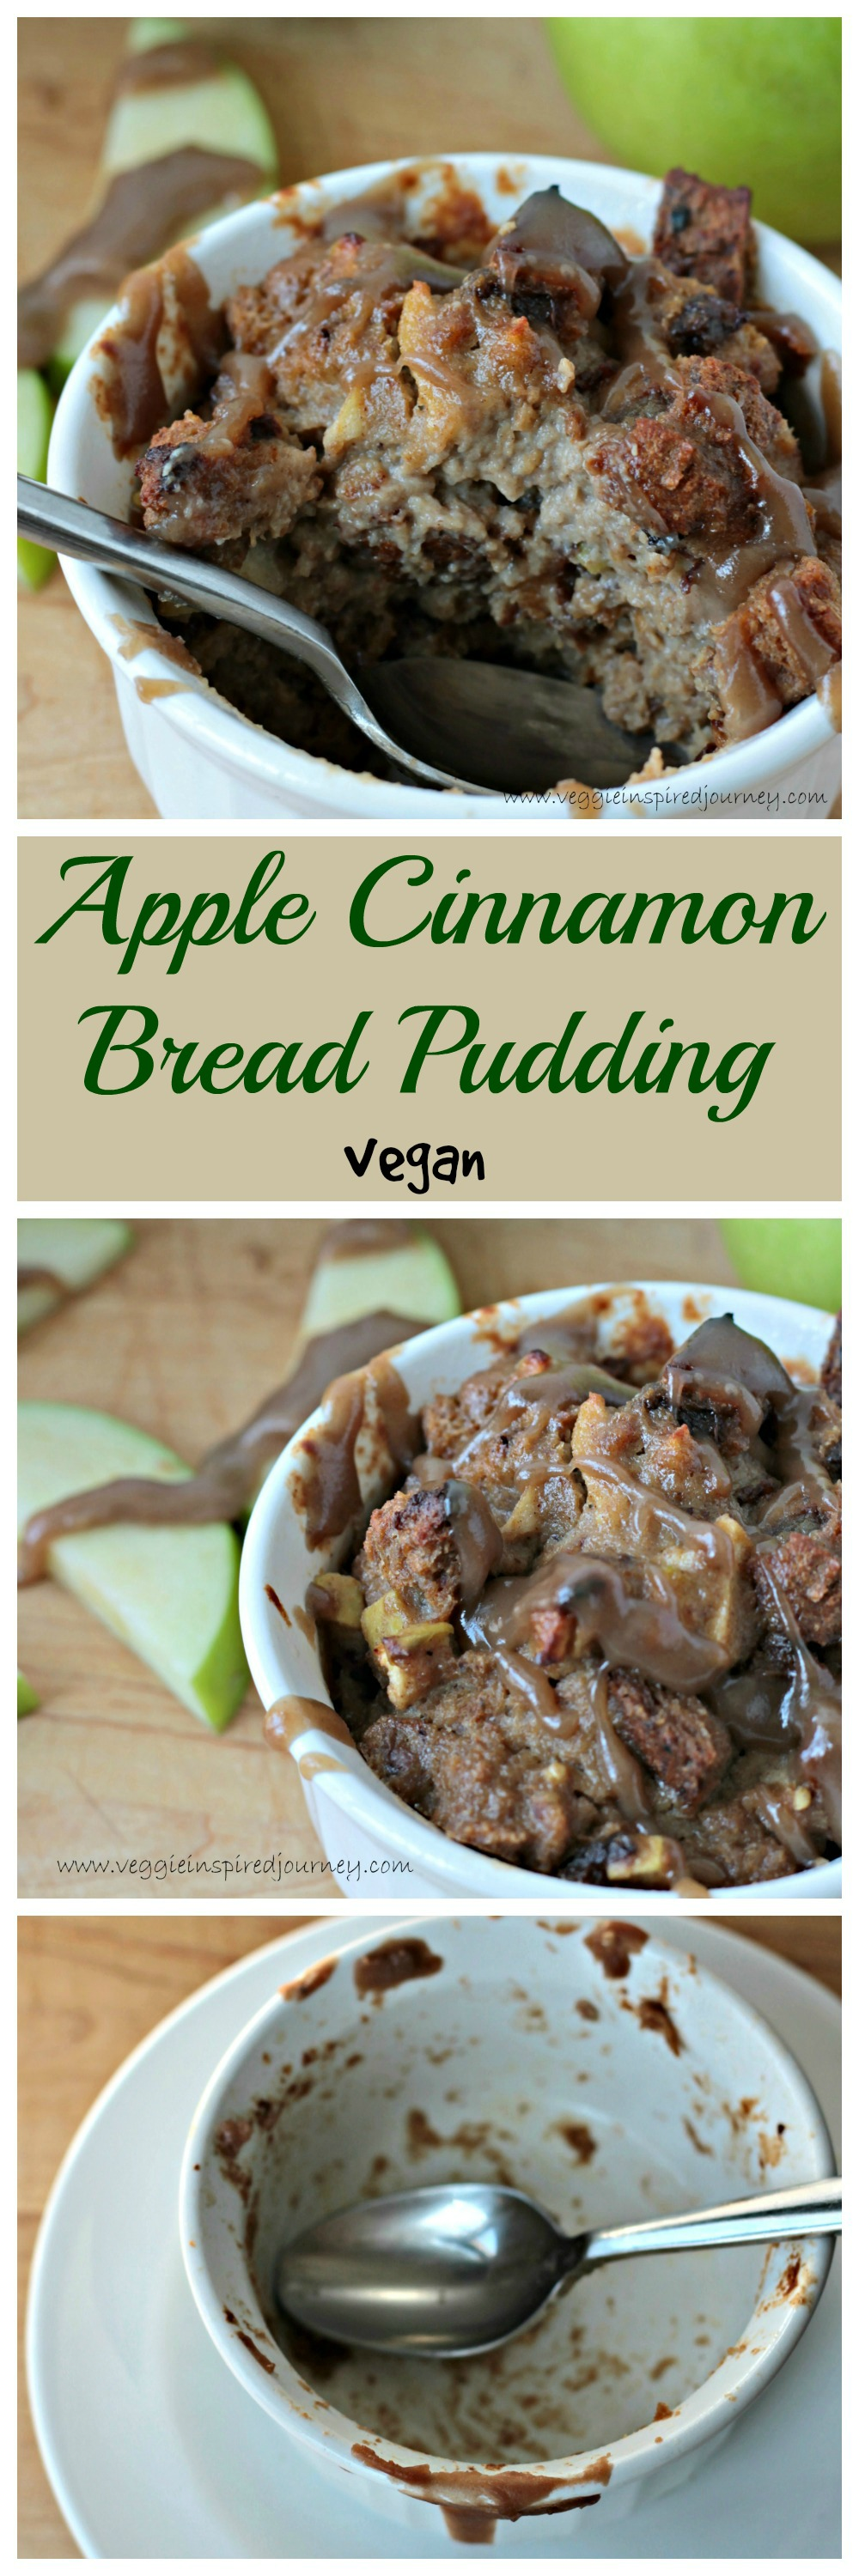 Apple Cinnamon Bread Pudding w/ Salted Caramel Sauce - this decadent dairy free dessert is actually healthy! You will lick the bowl clean!!